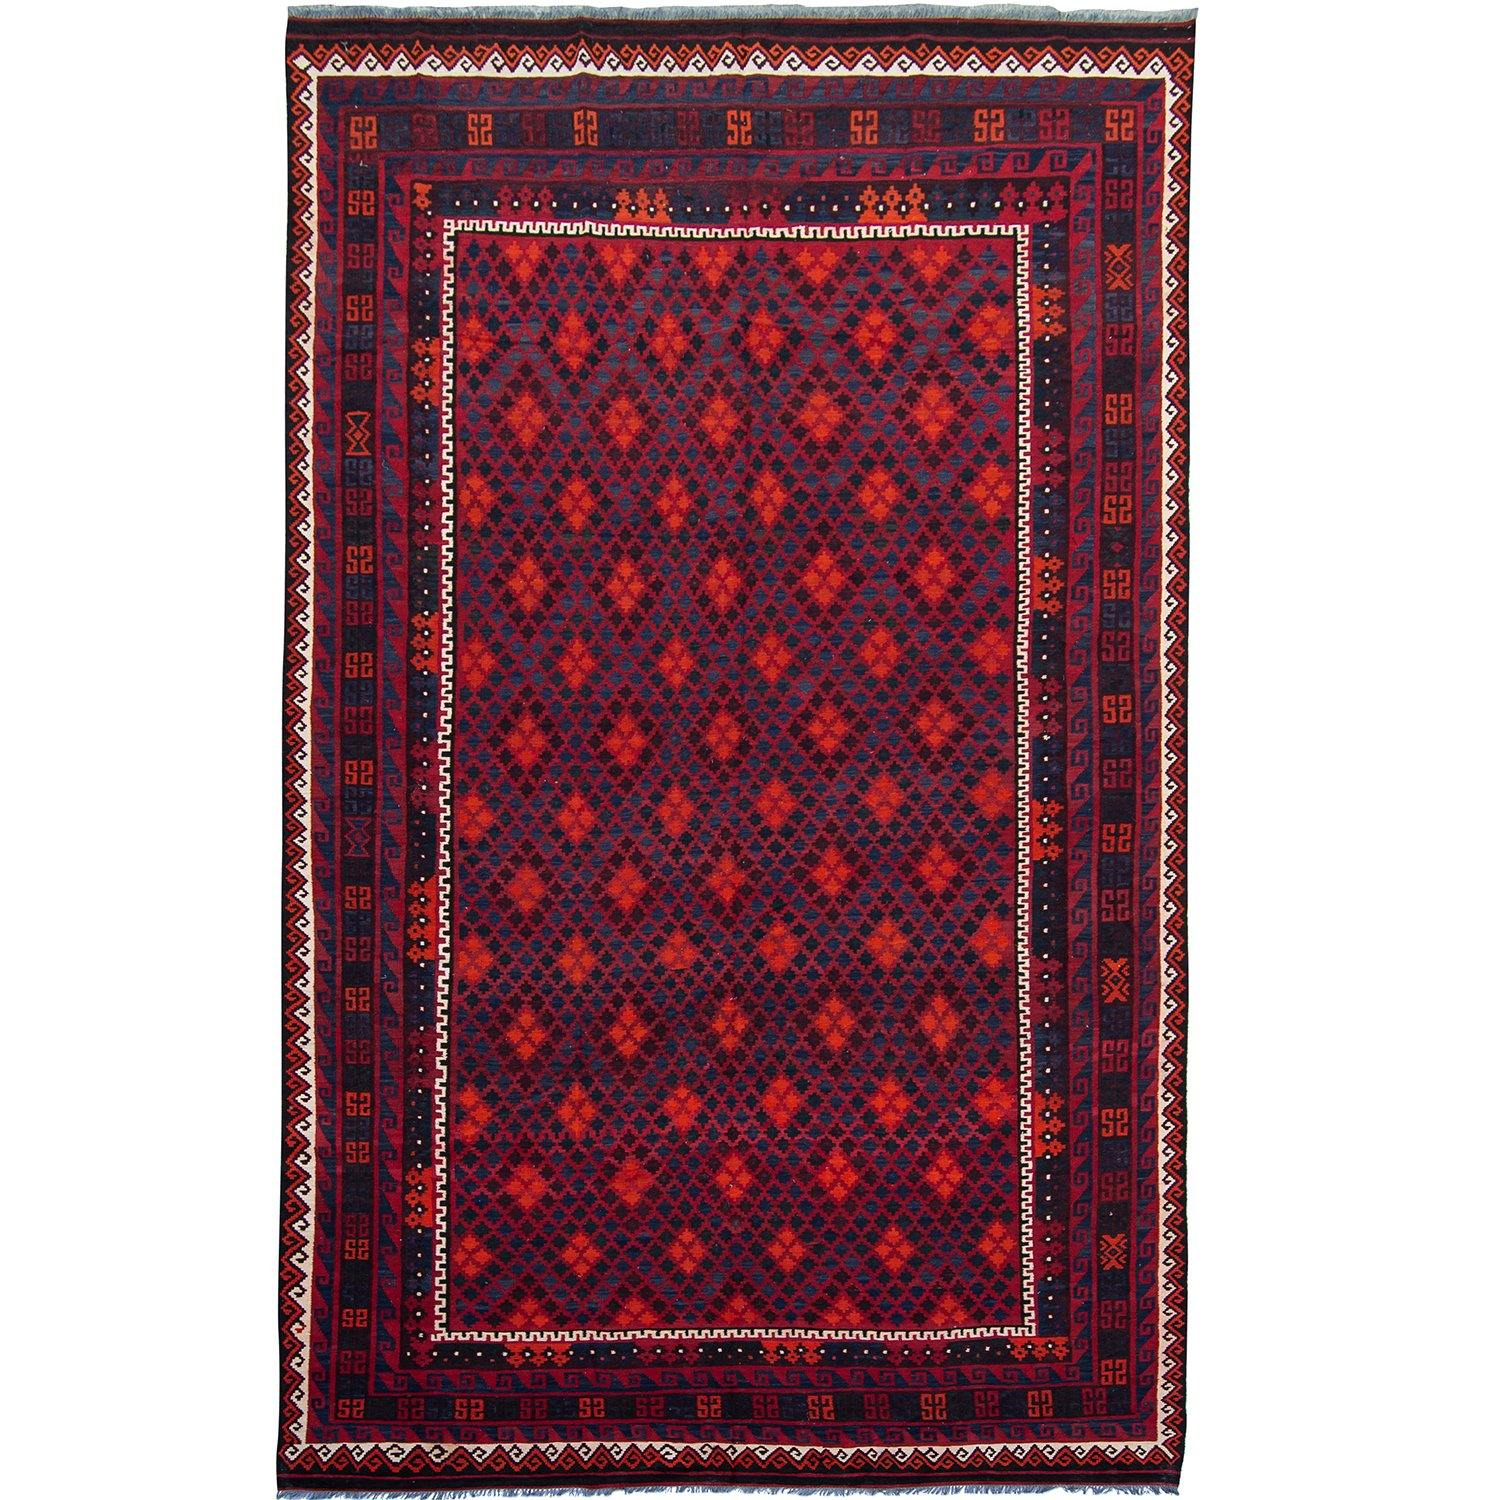 Fine Hand-woven 100% Wool KIlim Rug 265cm x 490cm Persian-Rug | House-of-Haghi | NewMarket | Auckland | NZ | Handmade Persian Rugs | Hand Knotted Persian Rugs